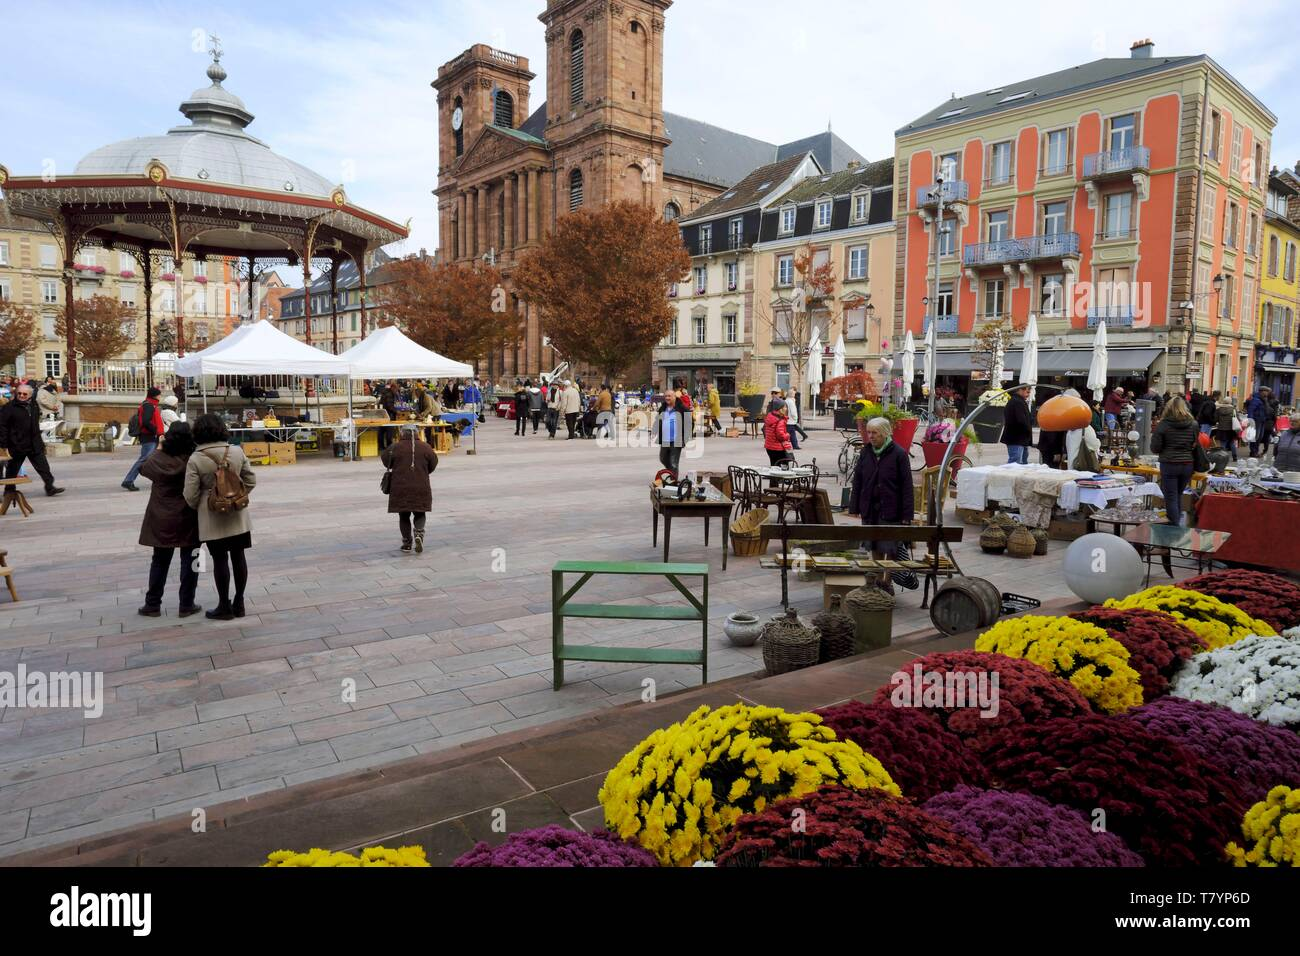 France, Territoire de Belfort, Belfort, Place d Armes, in front of the town hall, flowering, chrysanthemums in november, music kiosk, Saint Christophe cathedral dated 18th century - Stock Image